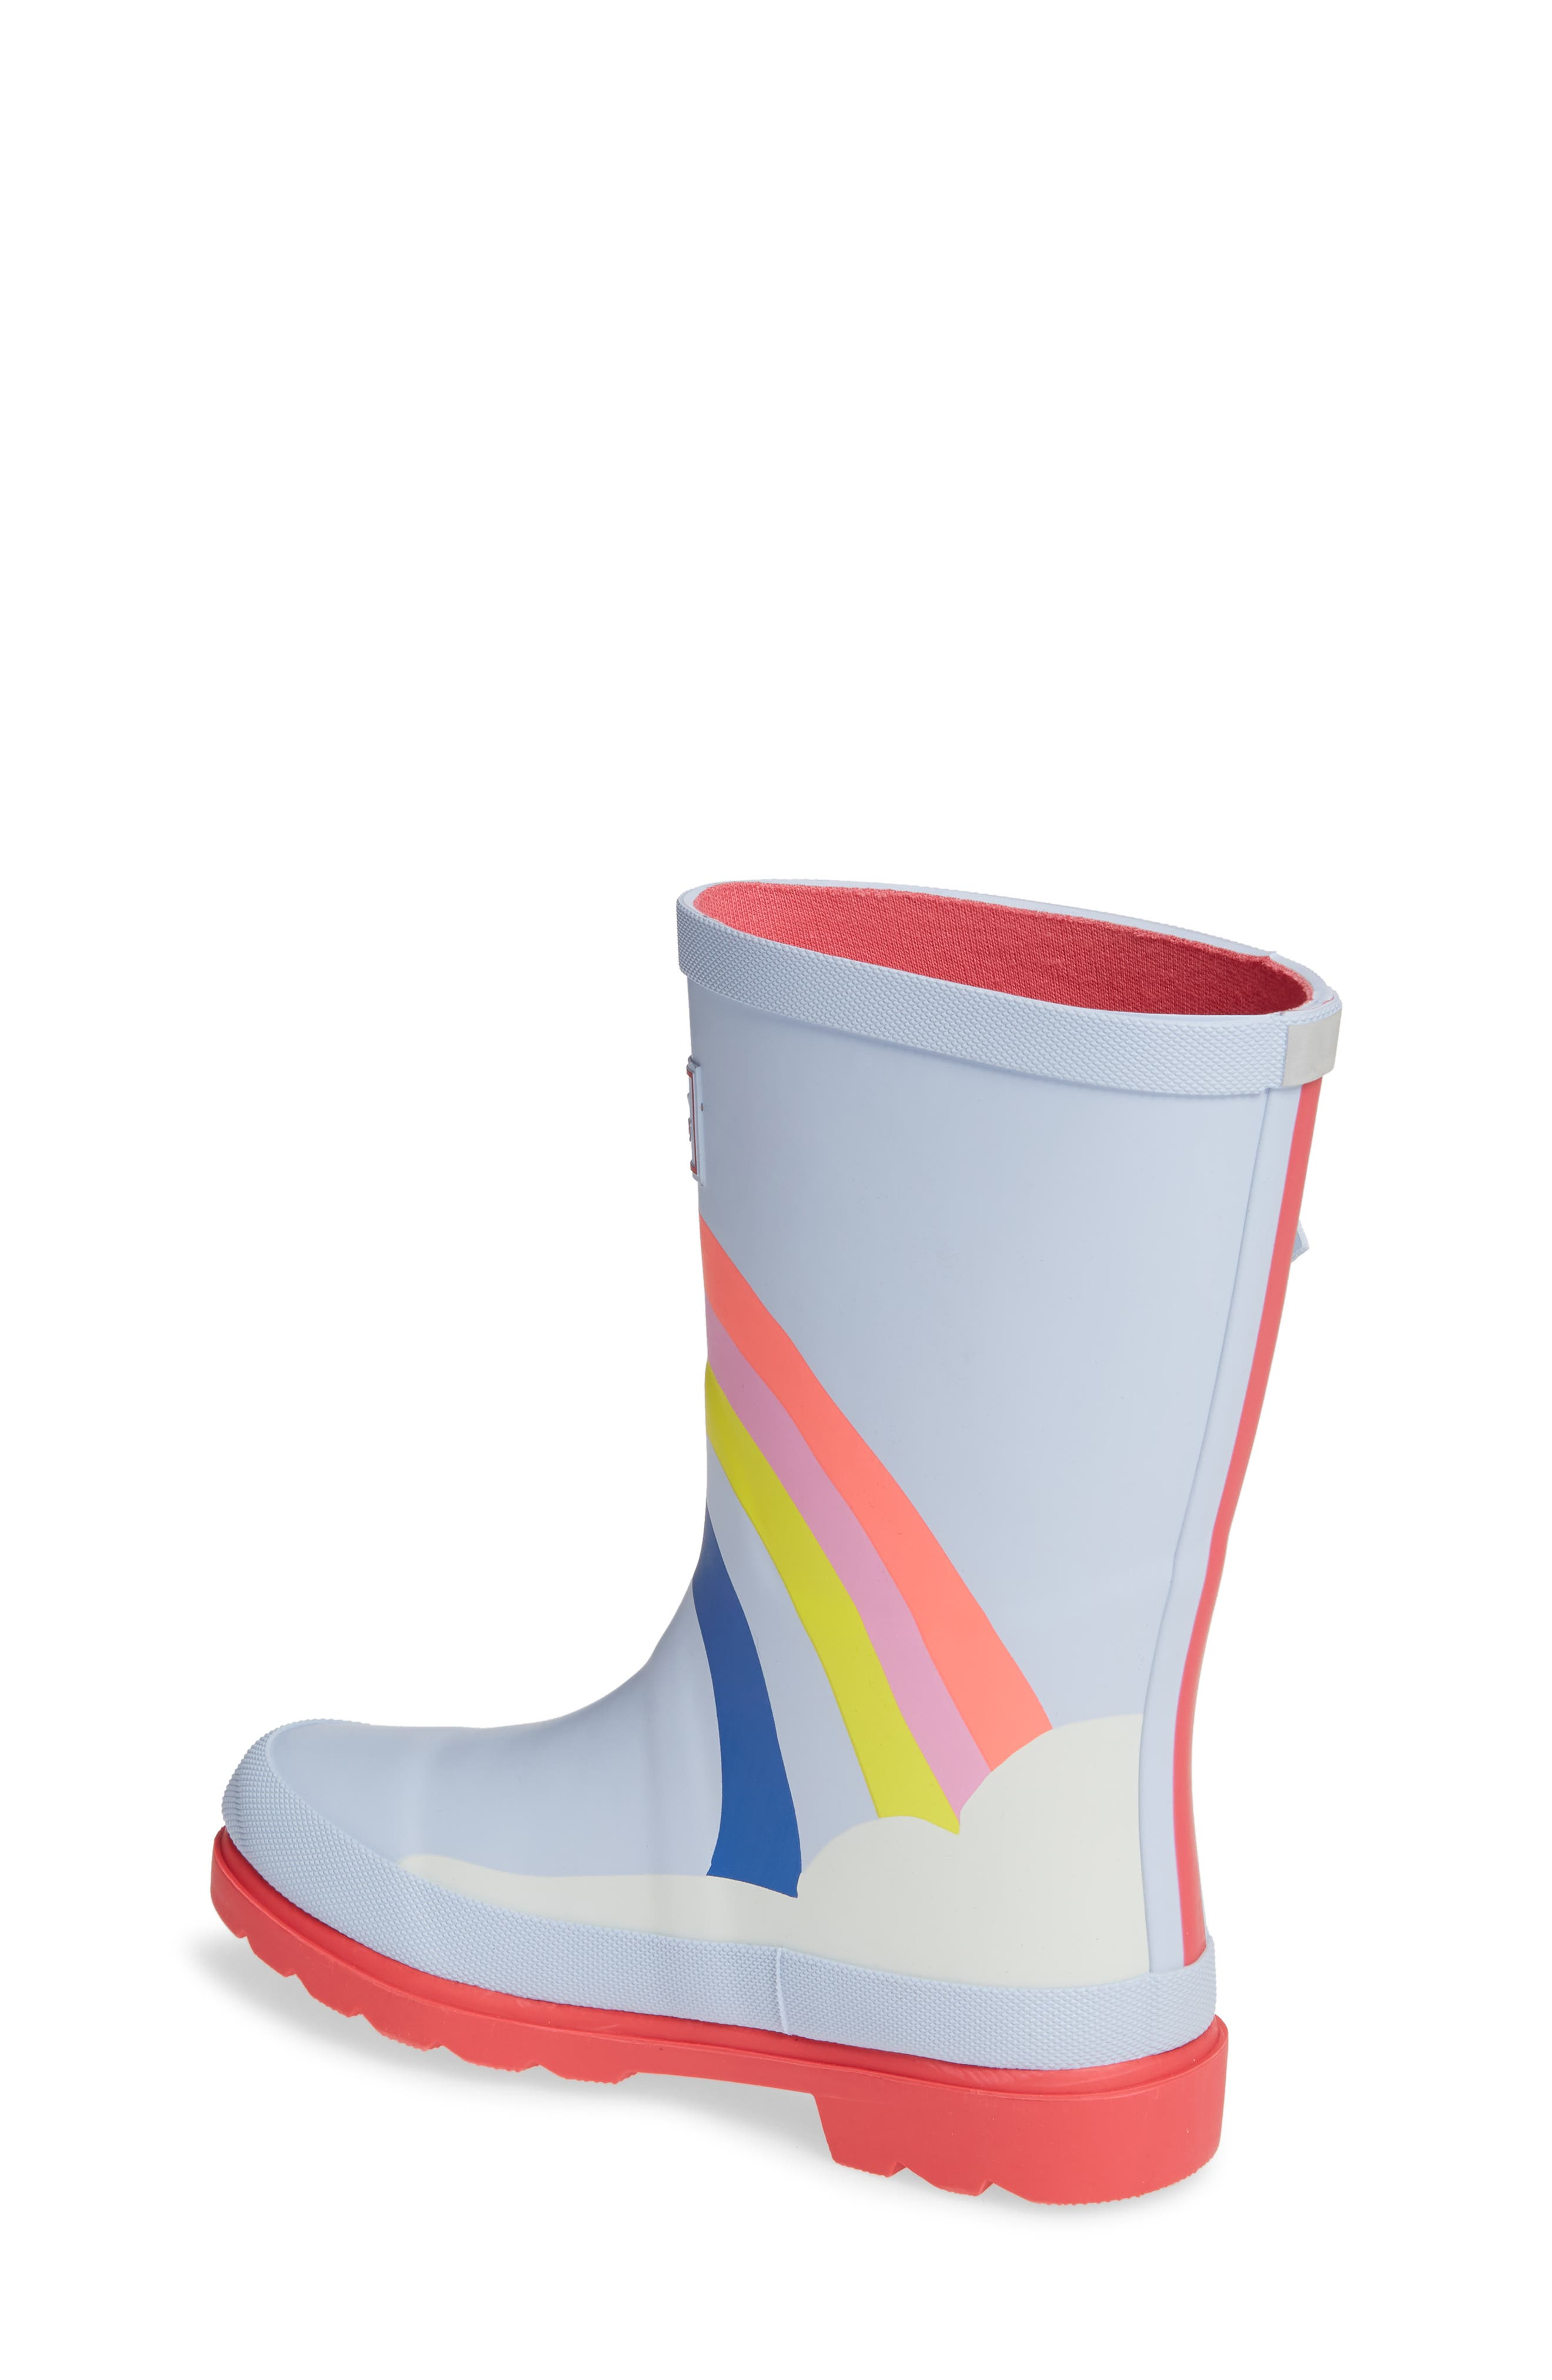 Mid Height Print Welly Waterproof Rain Boot,                             Alternate thumbnail 2, color,                             BLUE RAINBOW